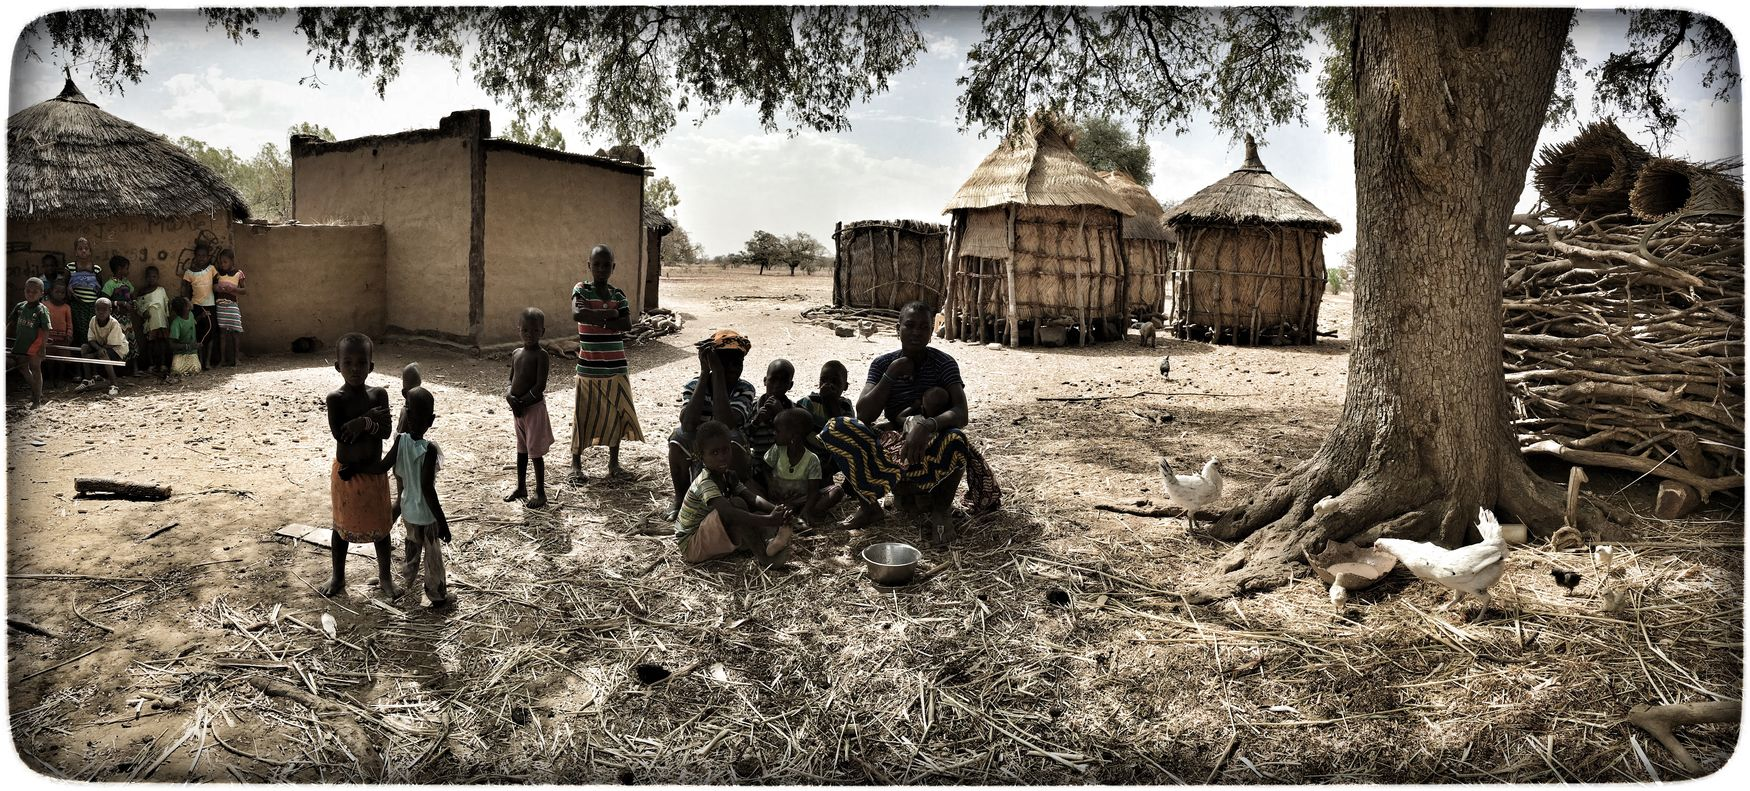 Dorf in Burkina Faso Architecture Building Exterior Built Structure Day House Large Group Of People Mammal Men Outdoors People Real People Sky Tree Village